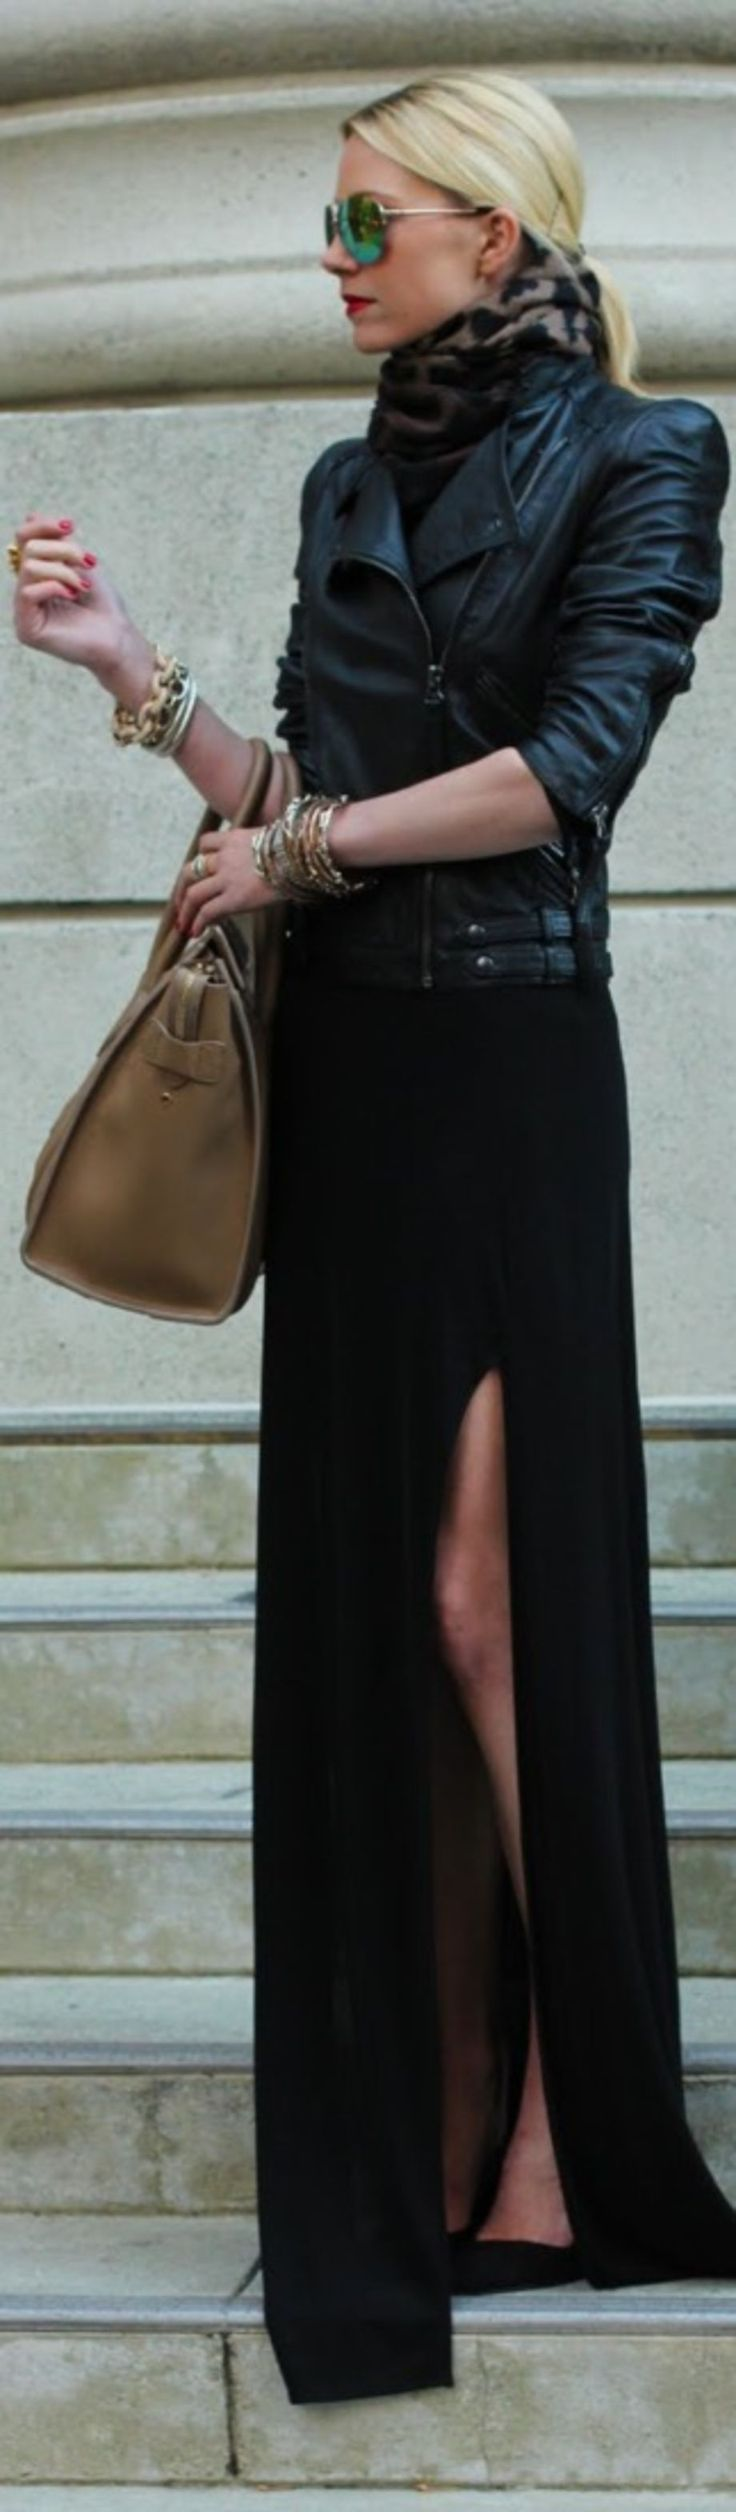 Gorgeous 85 Cool All Black Outfits for Women from https://www.fashionetter.com/2017/07/18/85-cool-black-outfits-women/